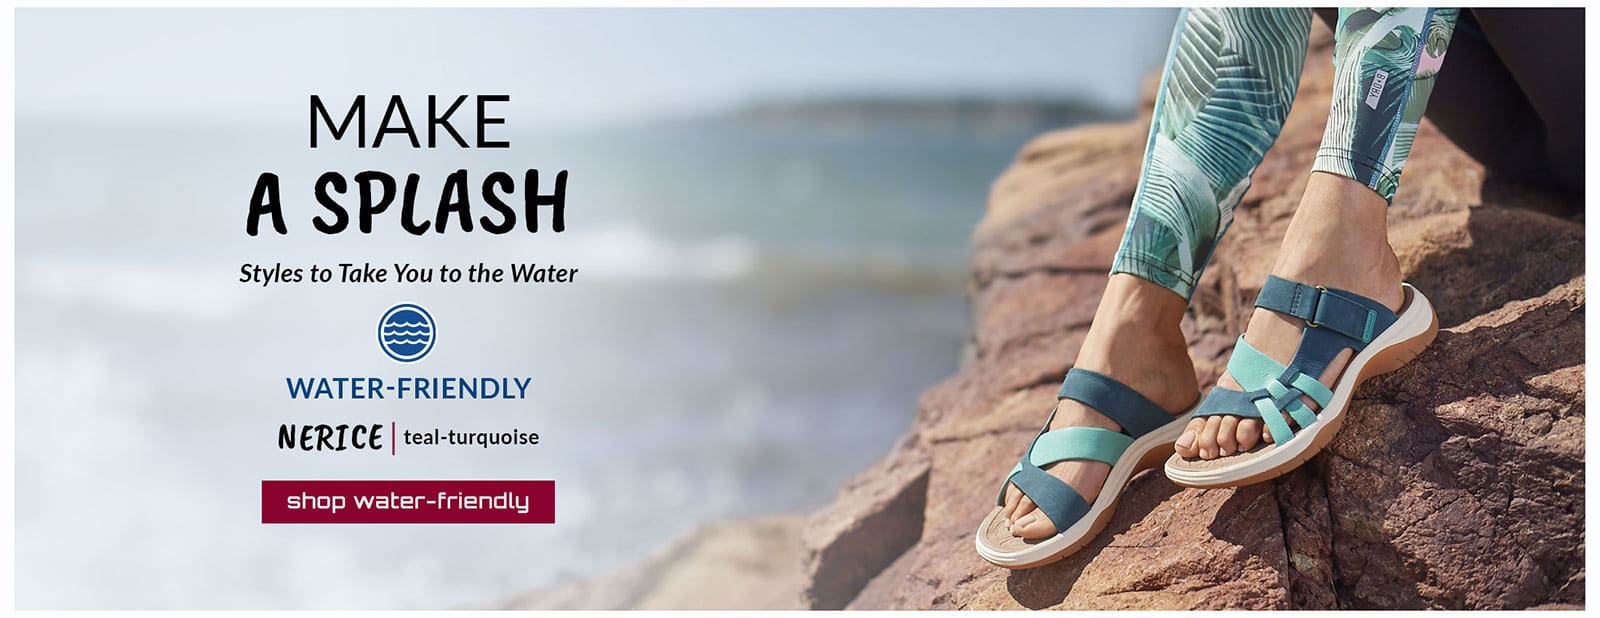 Make a splash. Styles to Take You to the Water. Featured styles: Water-Friendly Nerice sandal in teal-turquoise. Shop Water-Friendly.